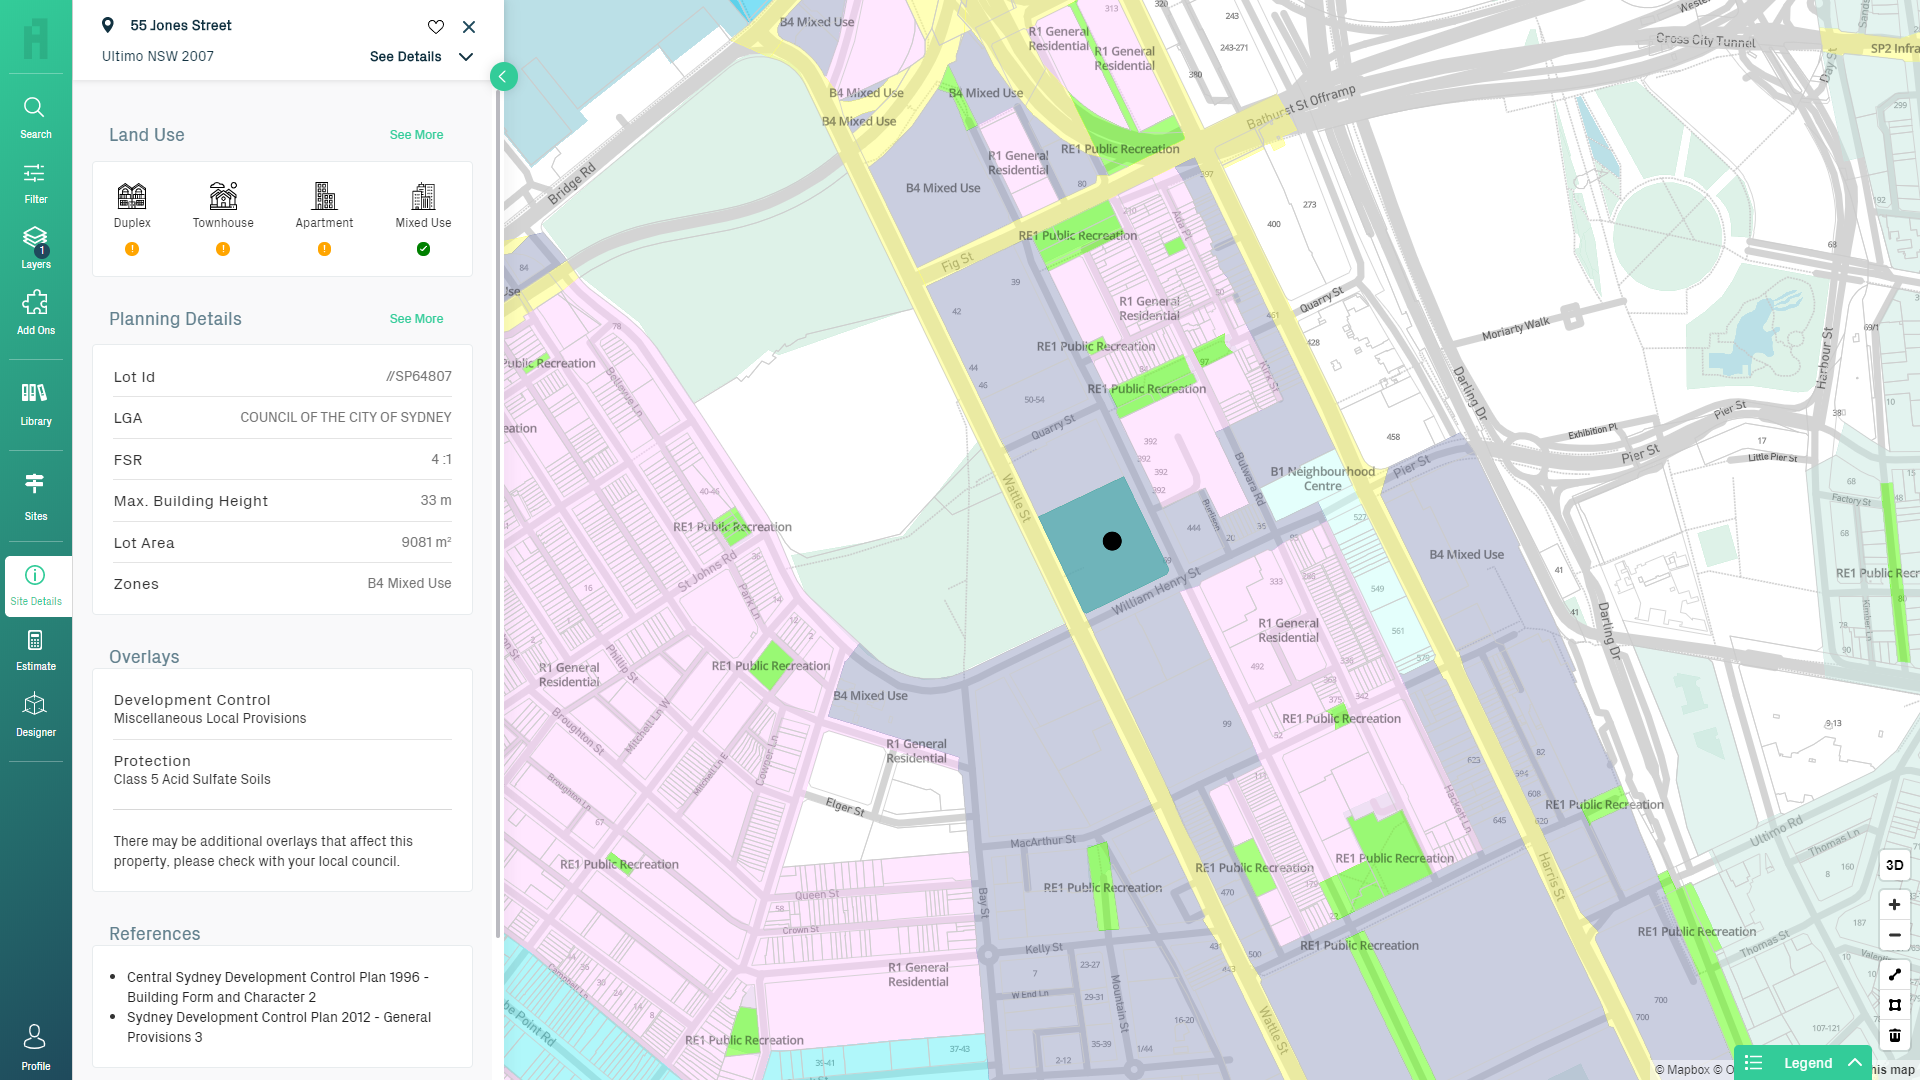 Screenshot that shows how Archistar depicts different zoning details in specific areas